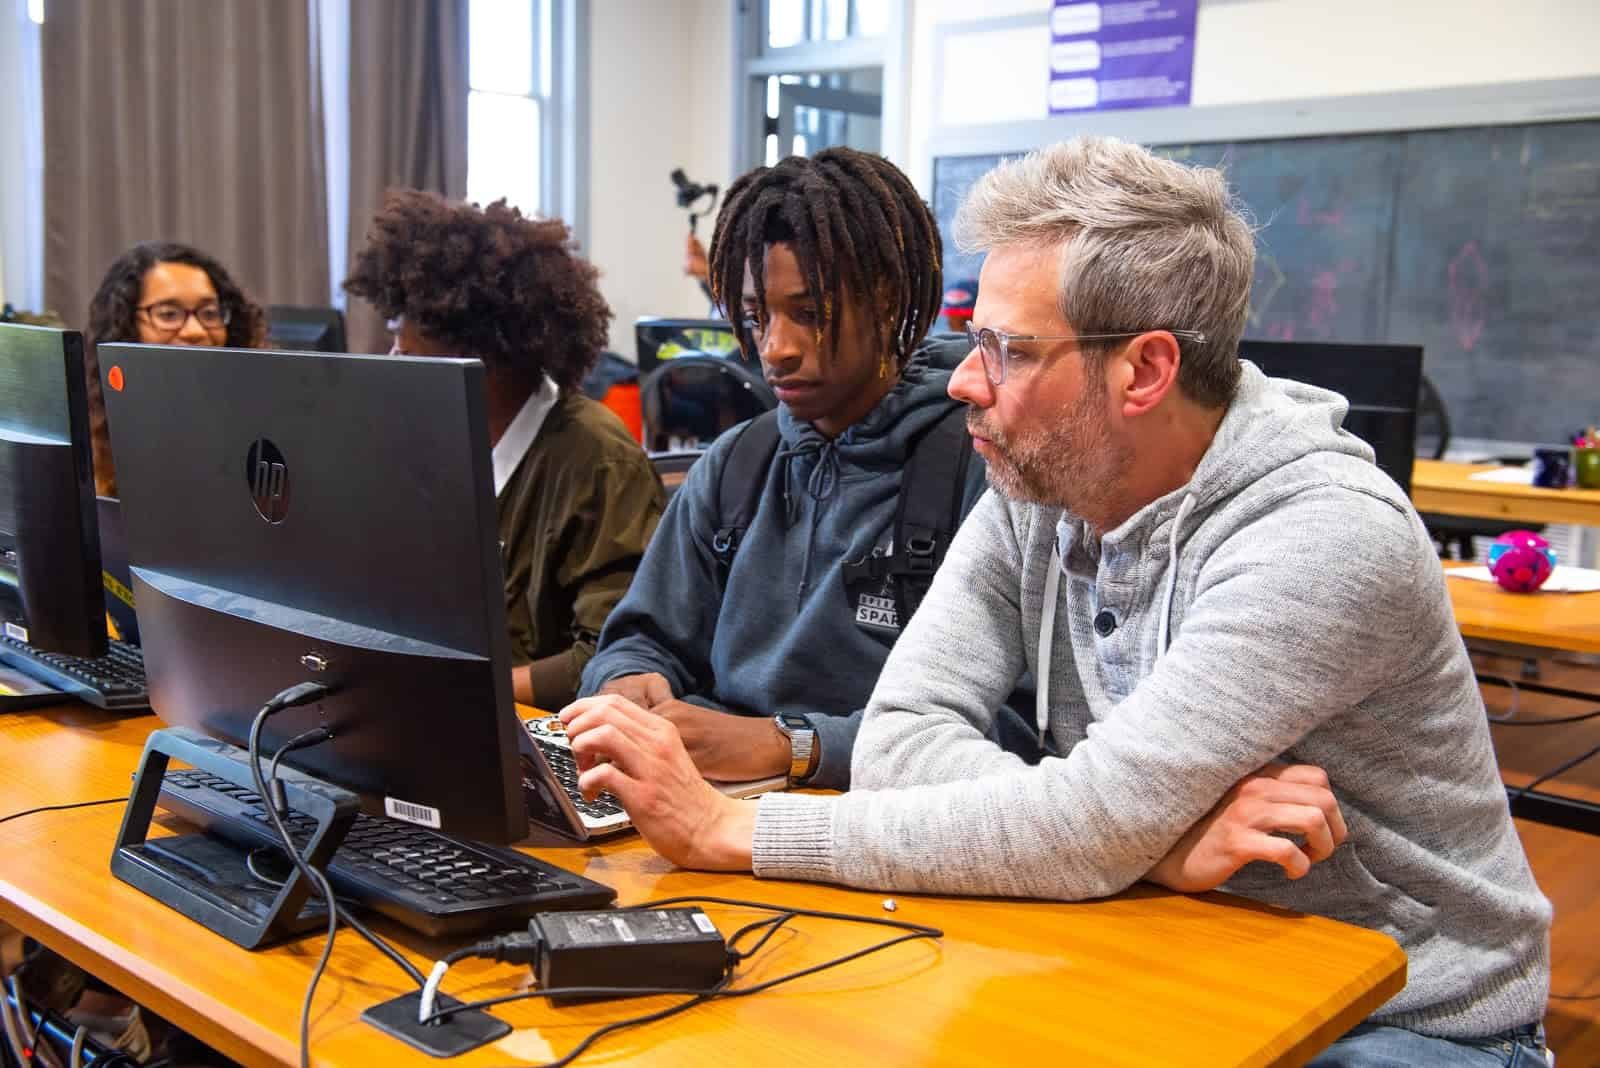 Students develop advanced software development skills at    Operation Spark   , a third-party training provider founded by a veteran software engineer.